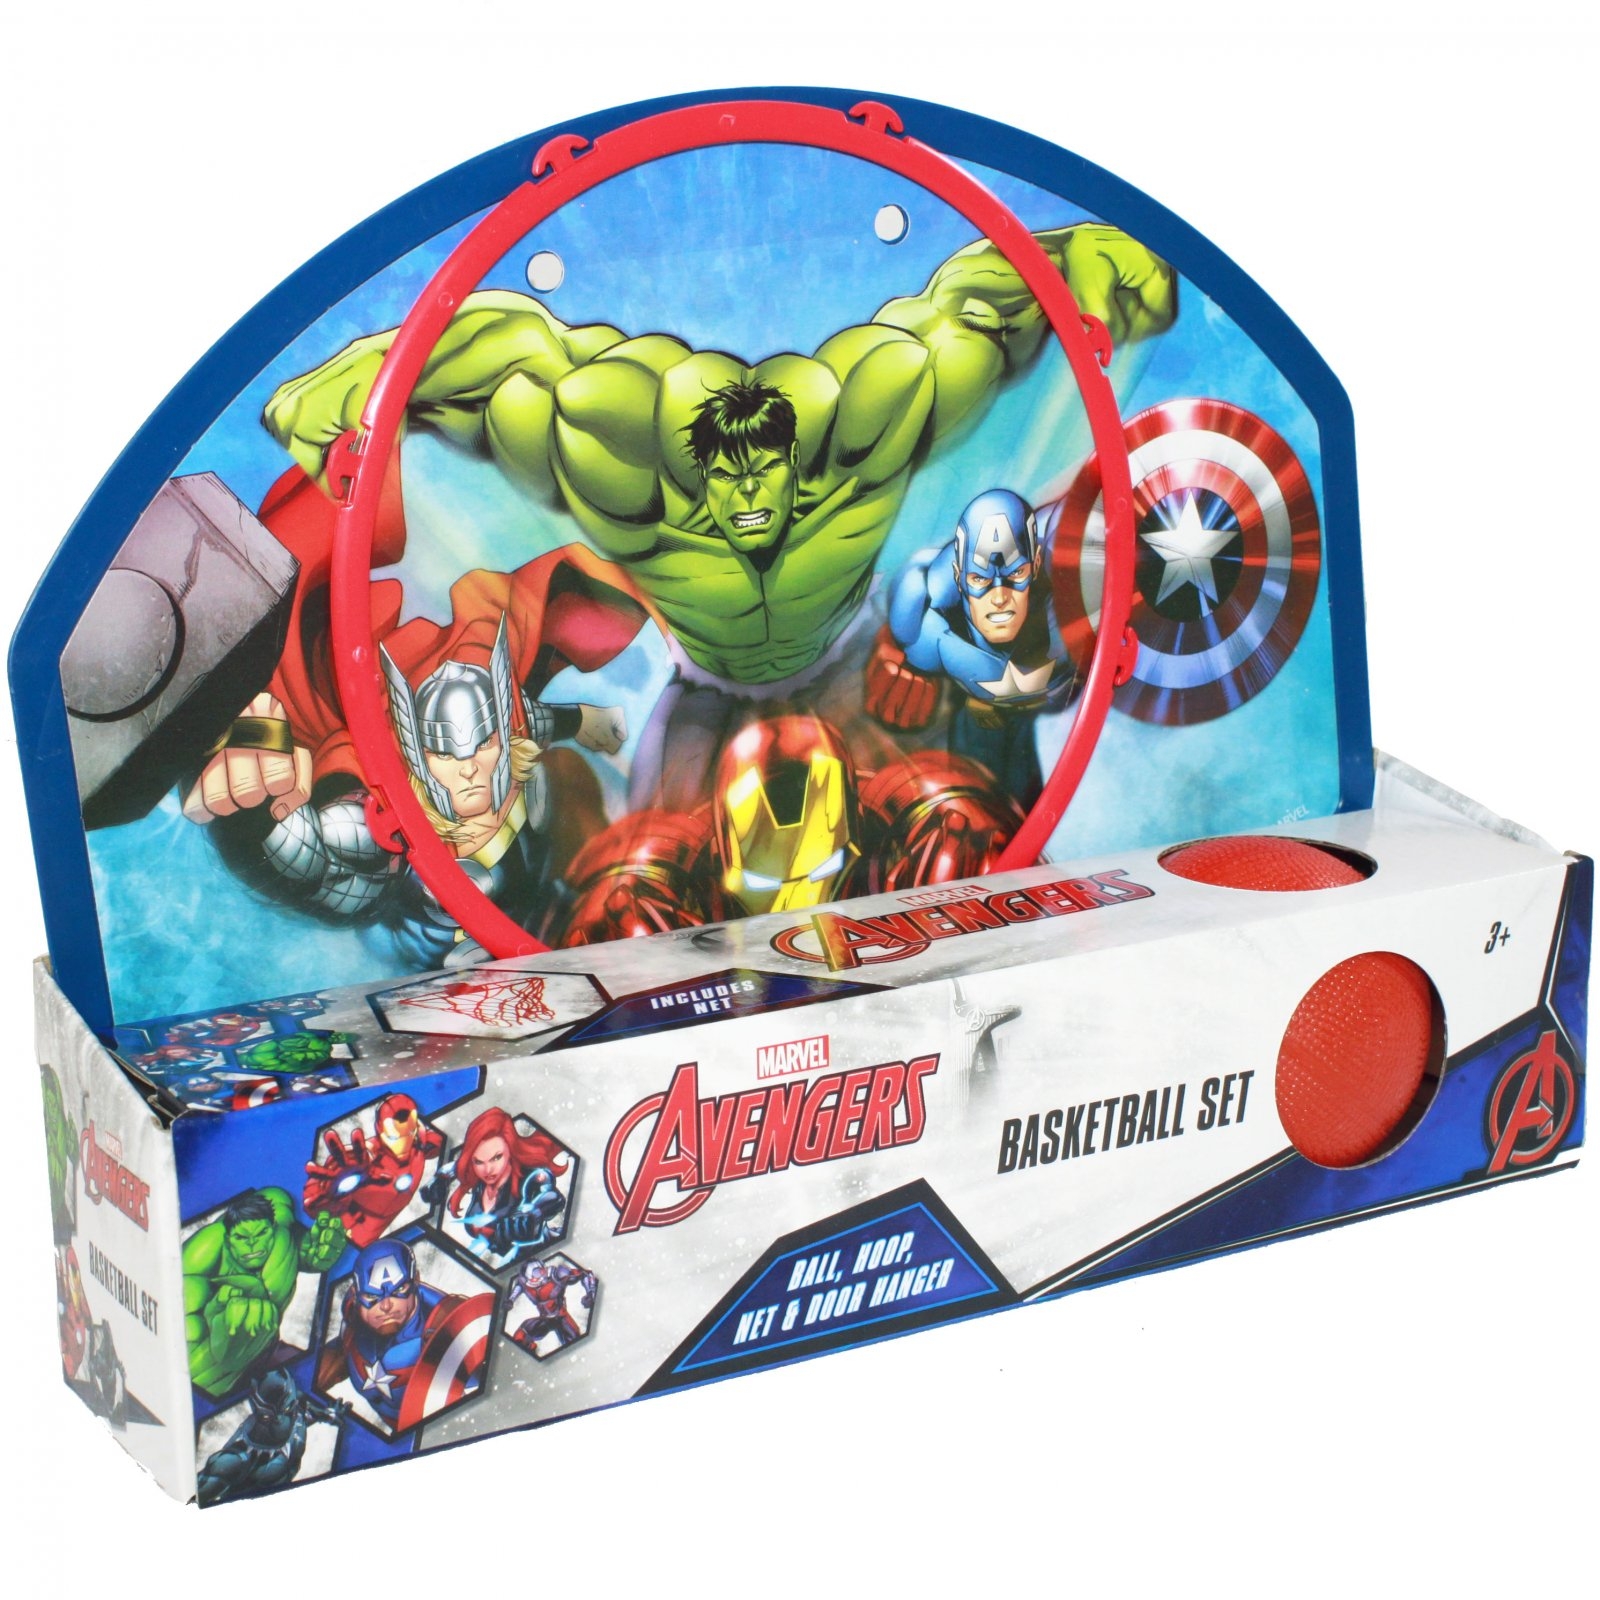 "Kids Basketball Set ""Ball, Hoop, Net & Door Hanger"" Avengers"